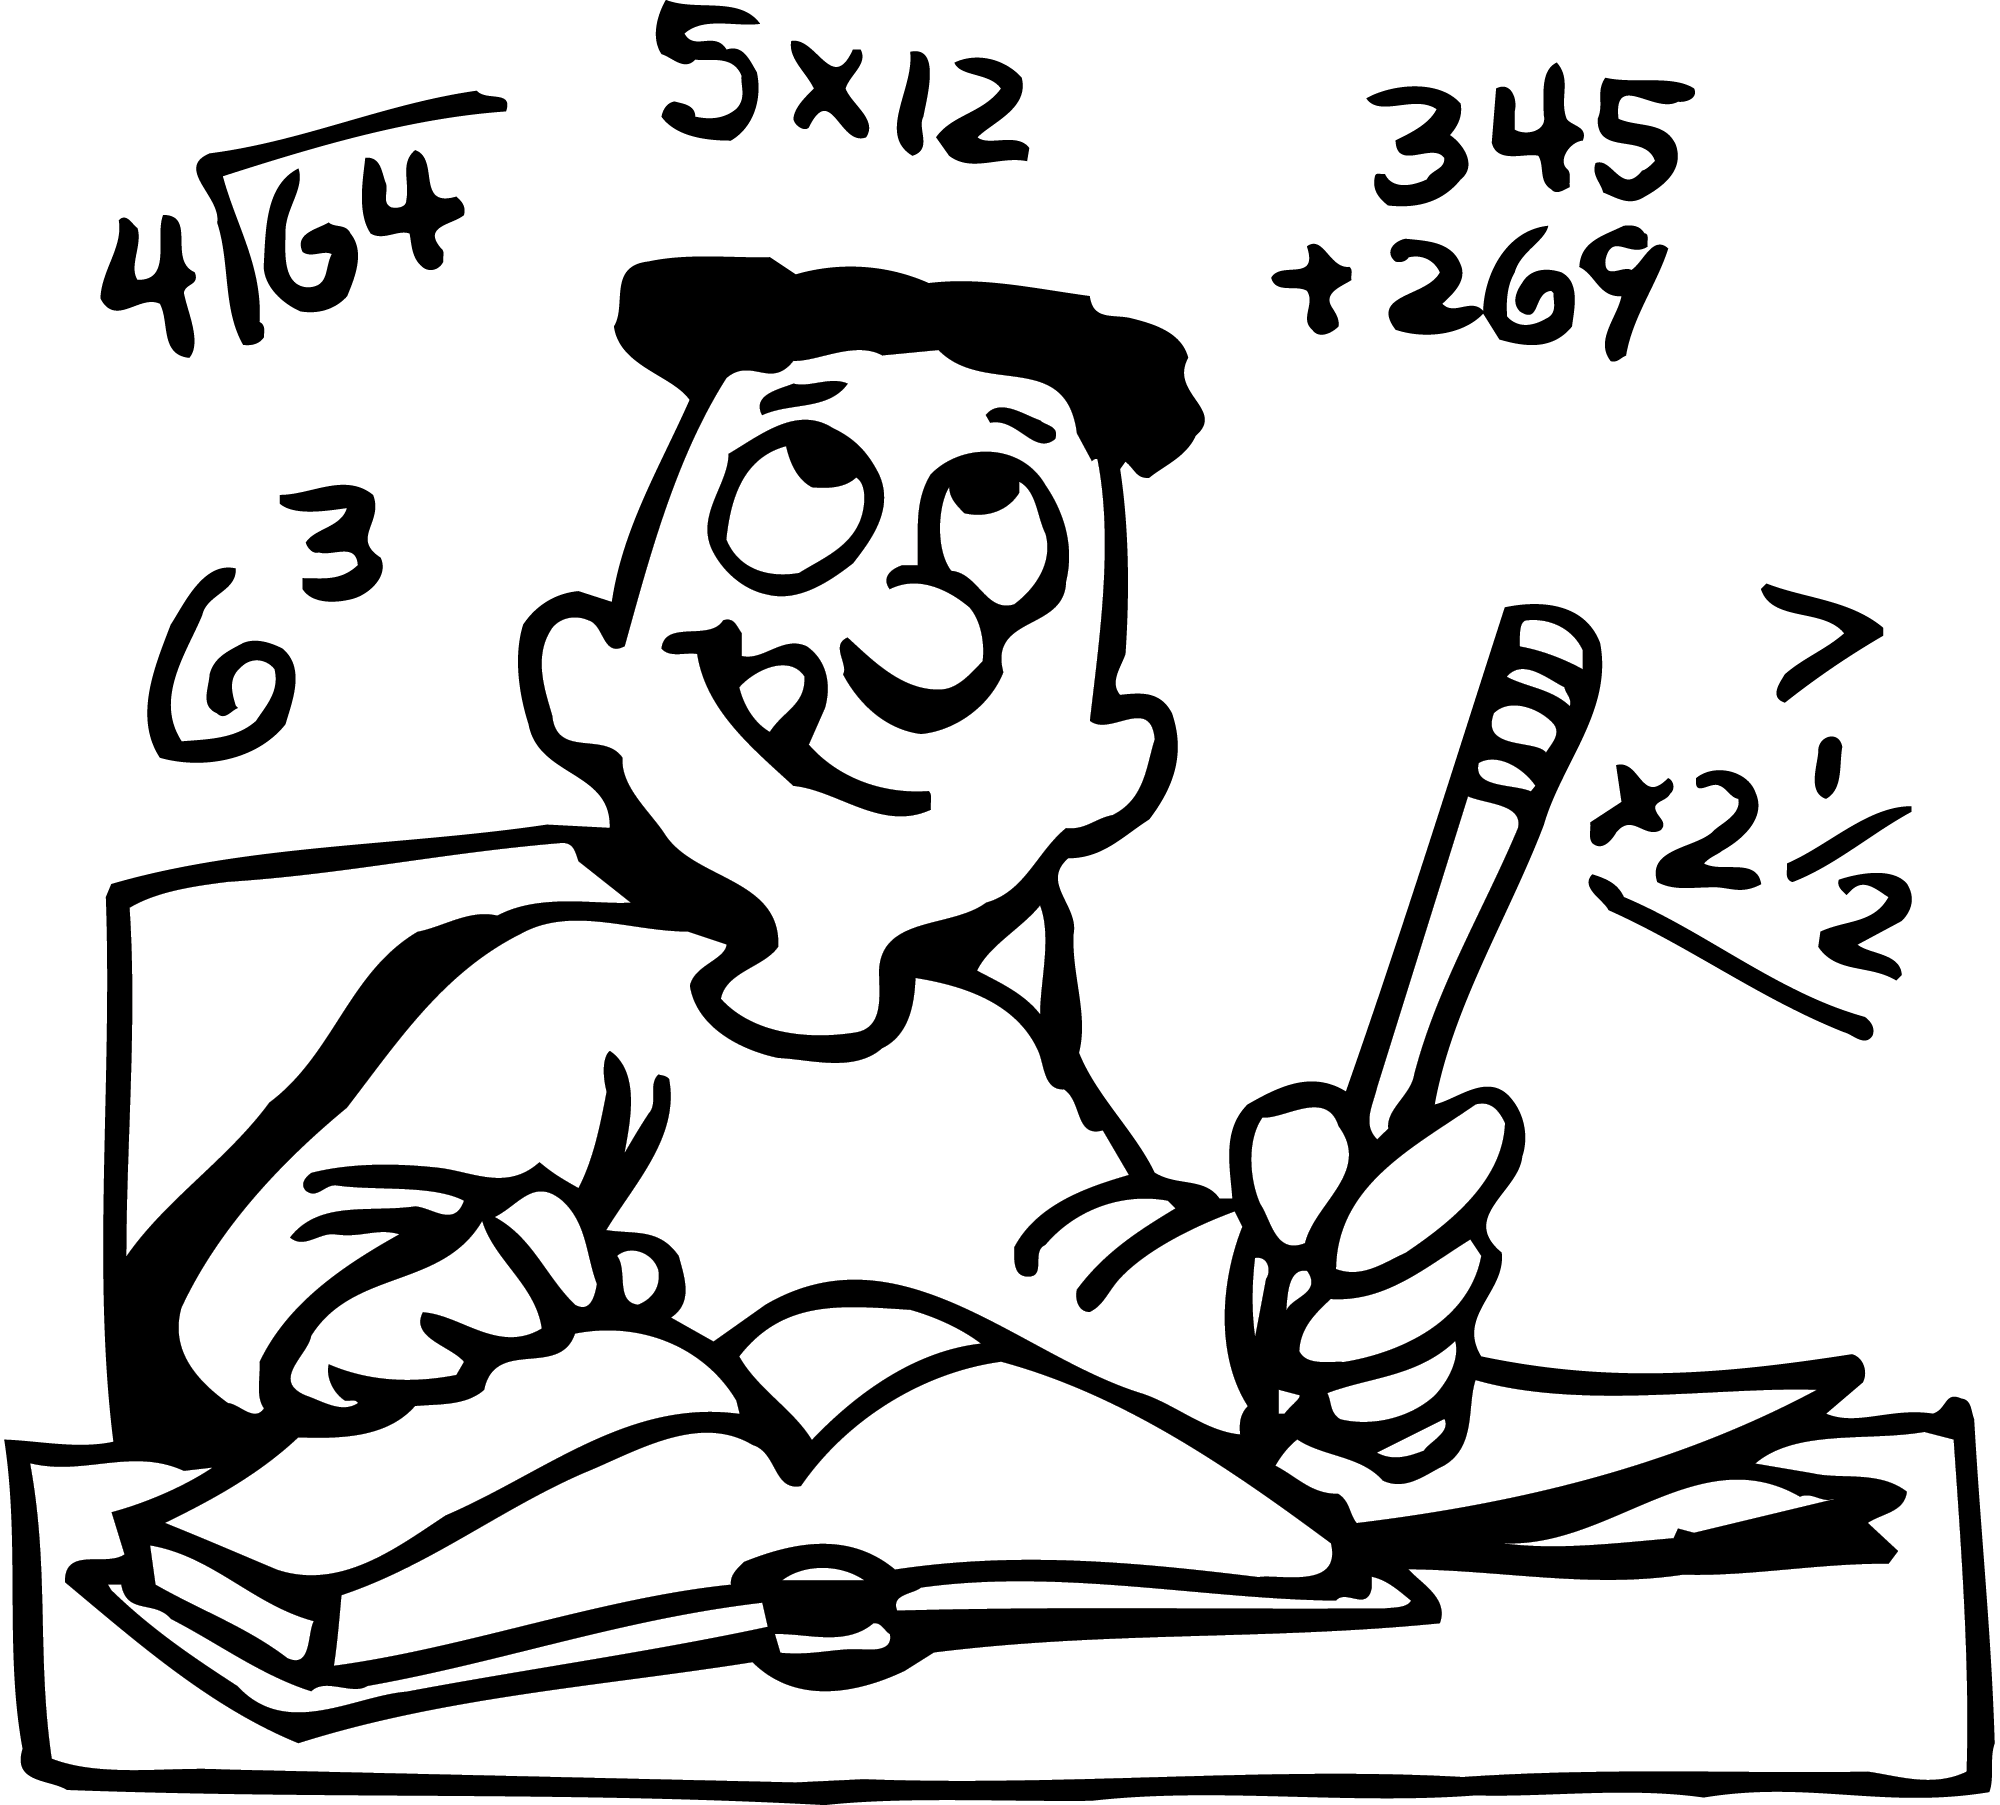 Math for classroom lessons. Pain clipart black and white